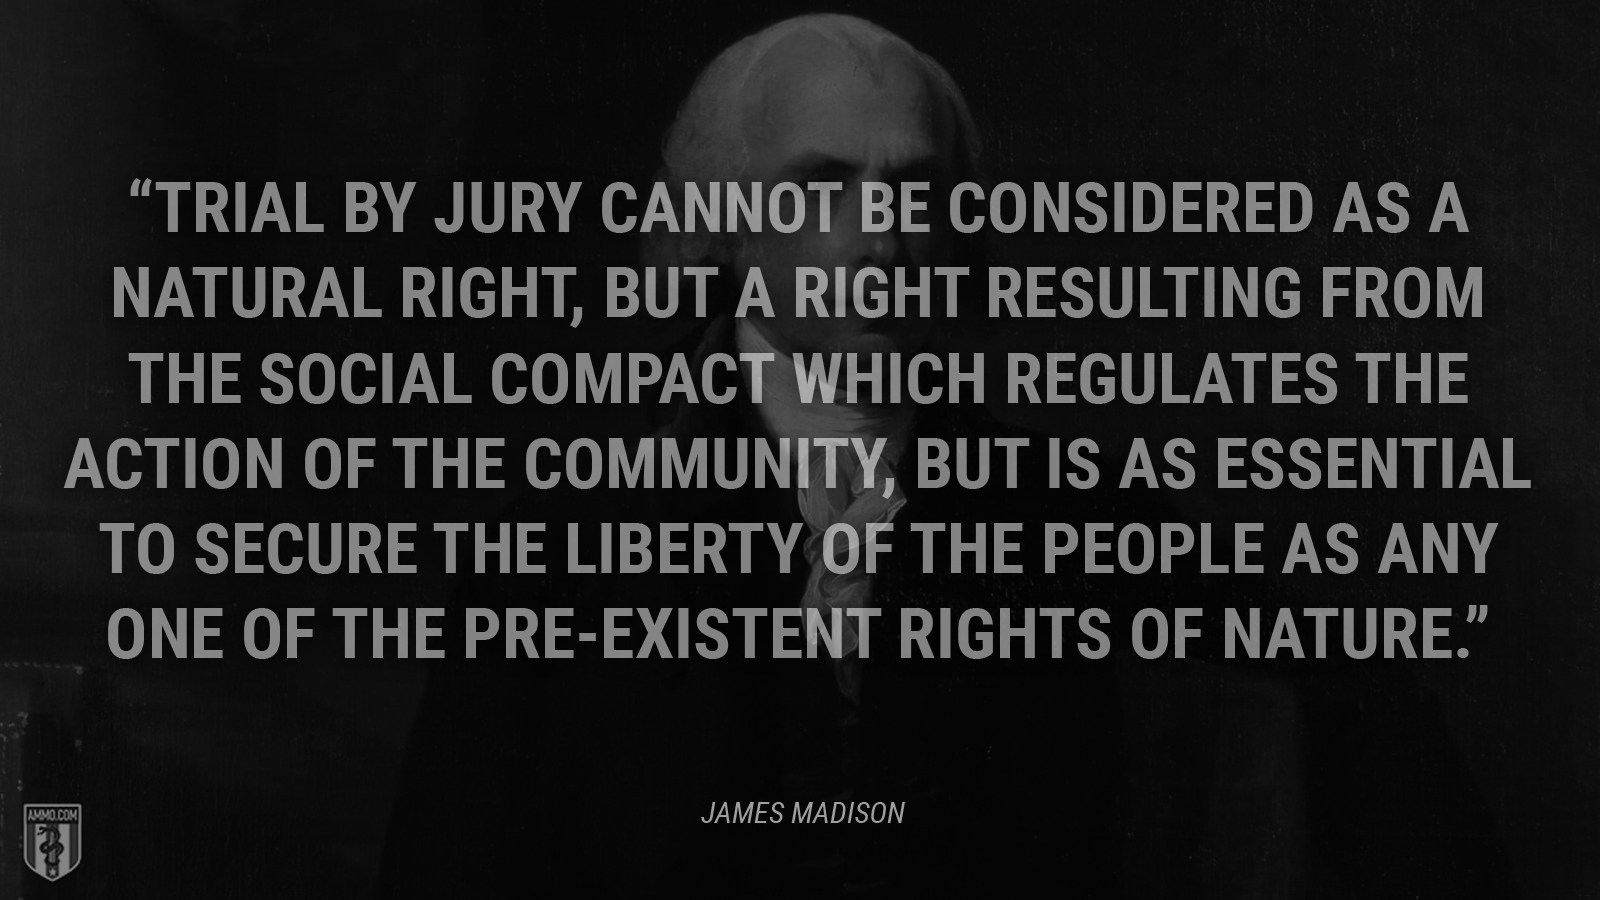 """Trial by jury cannot be considered as a natural right, but a right resulting from the social compact which regulates the action of the community, but is as essential to secure the liberty of the people as any one of the pre-existent rights of nature."" - James Madison"